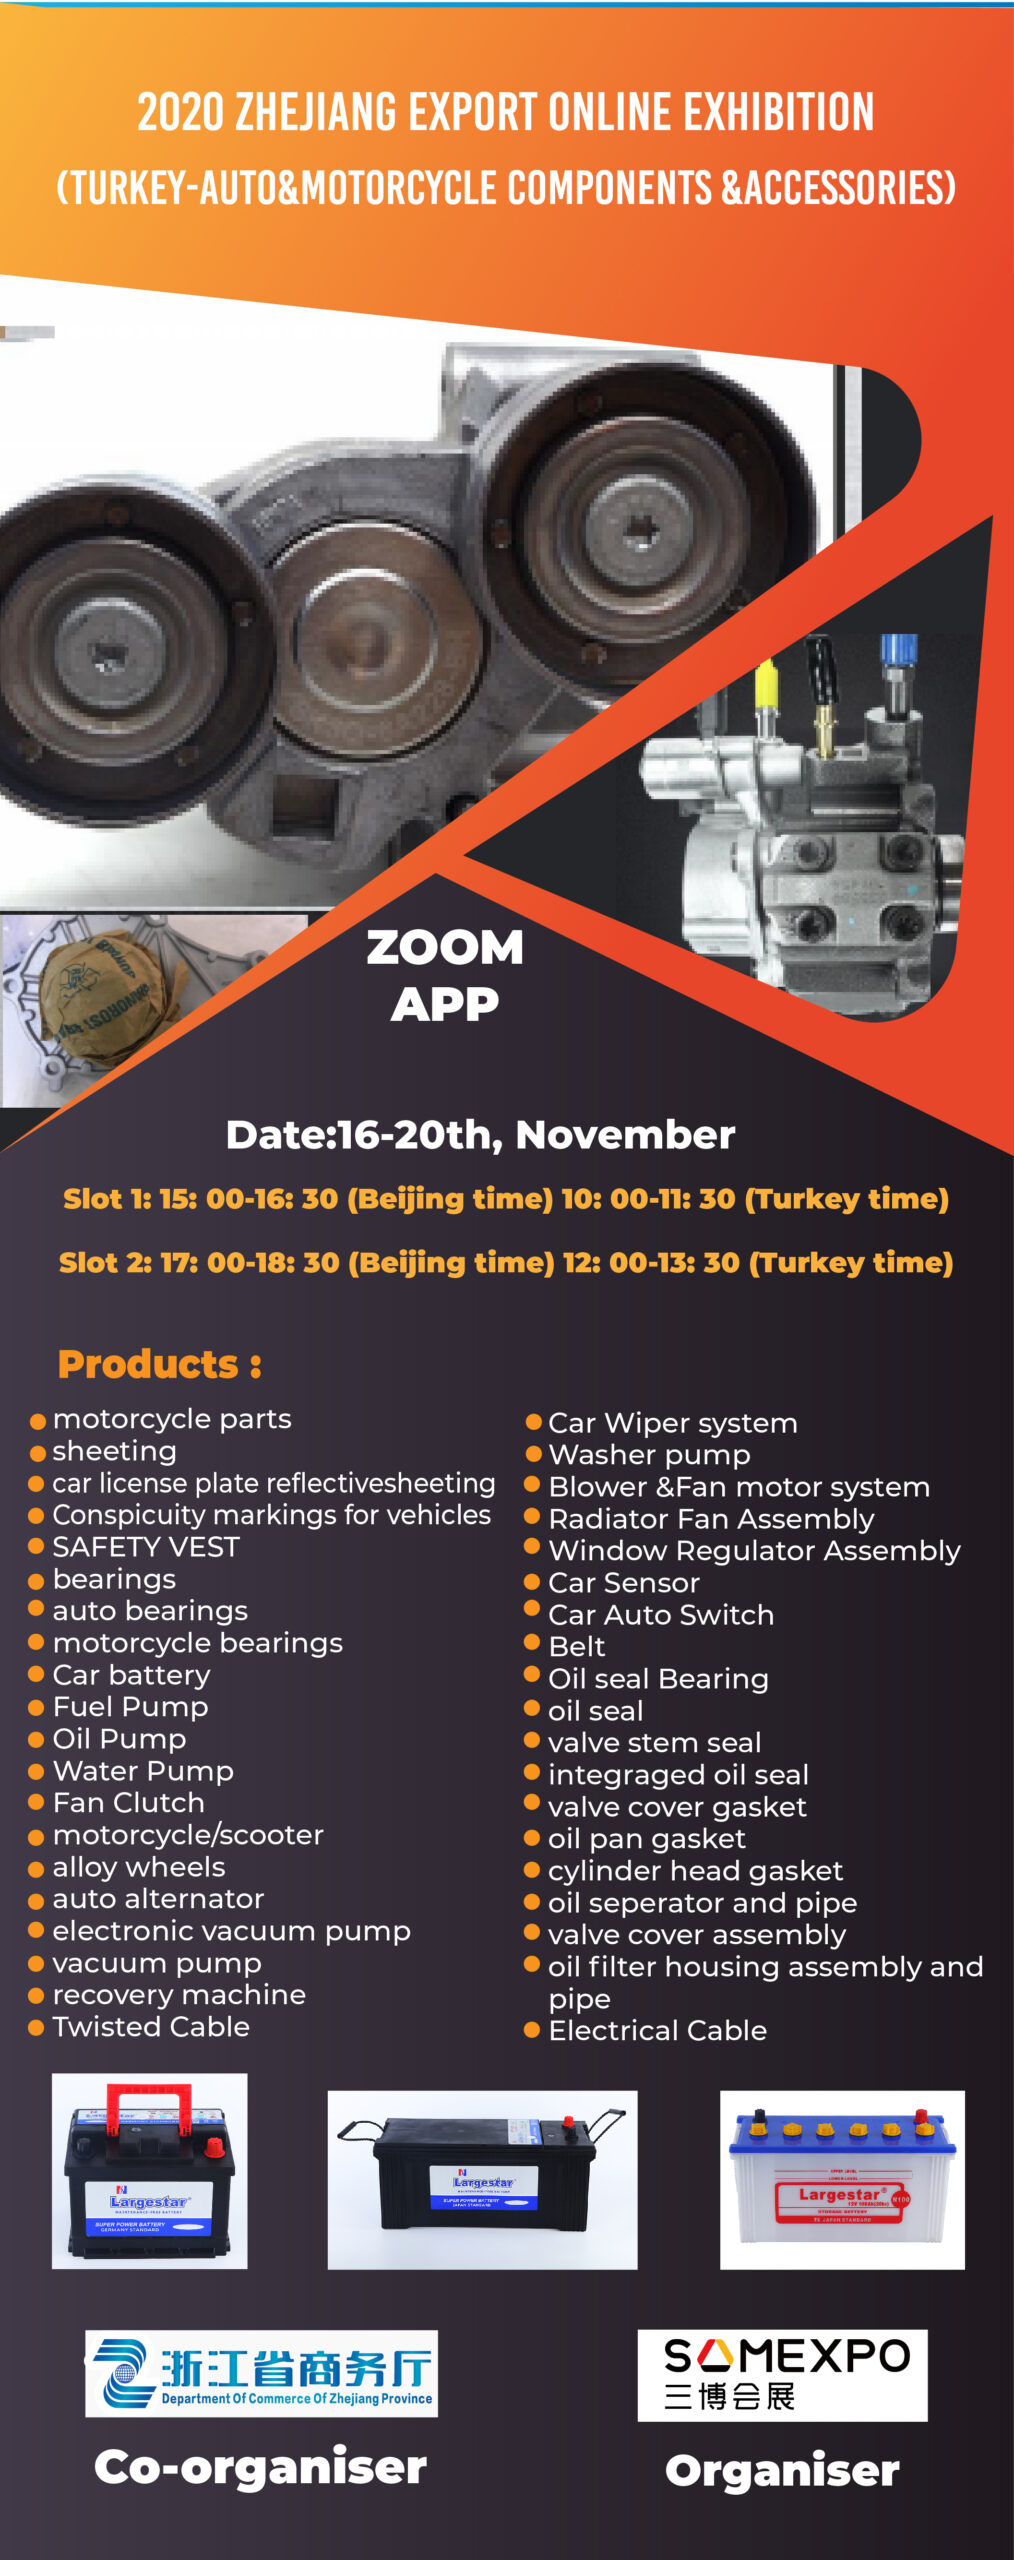 Zhejiang Export Online Fair 2020 – Turkey – Auto and Motorcycle Parts and Accessories